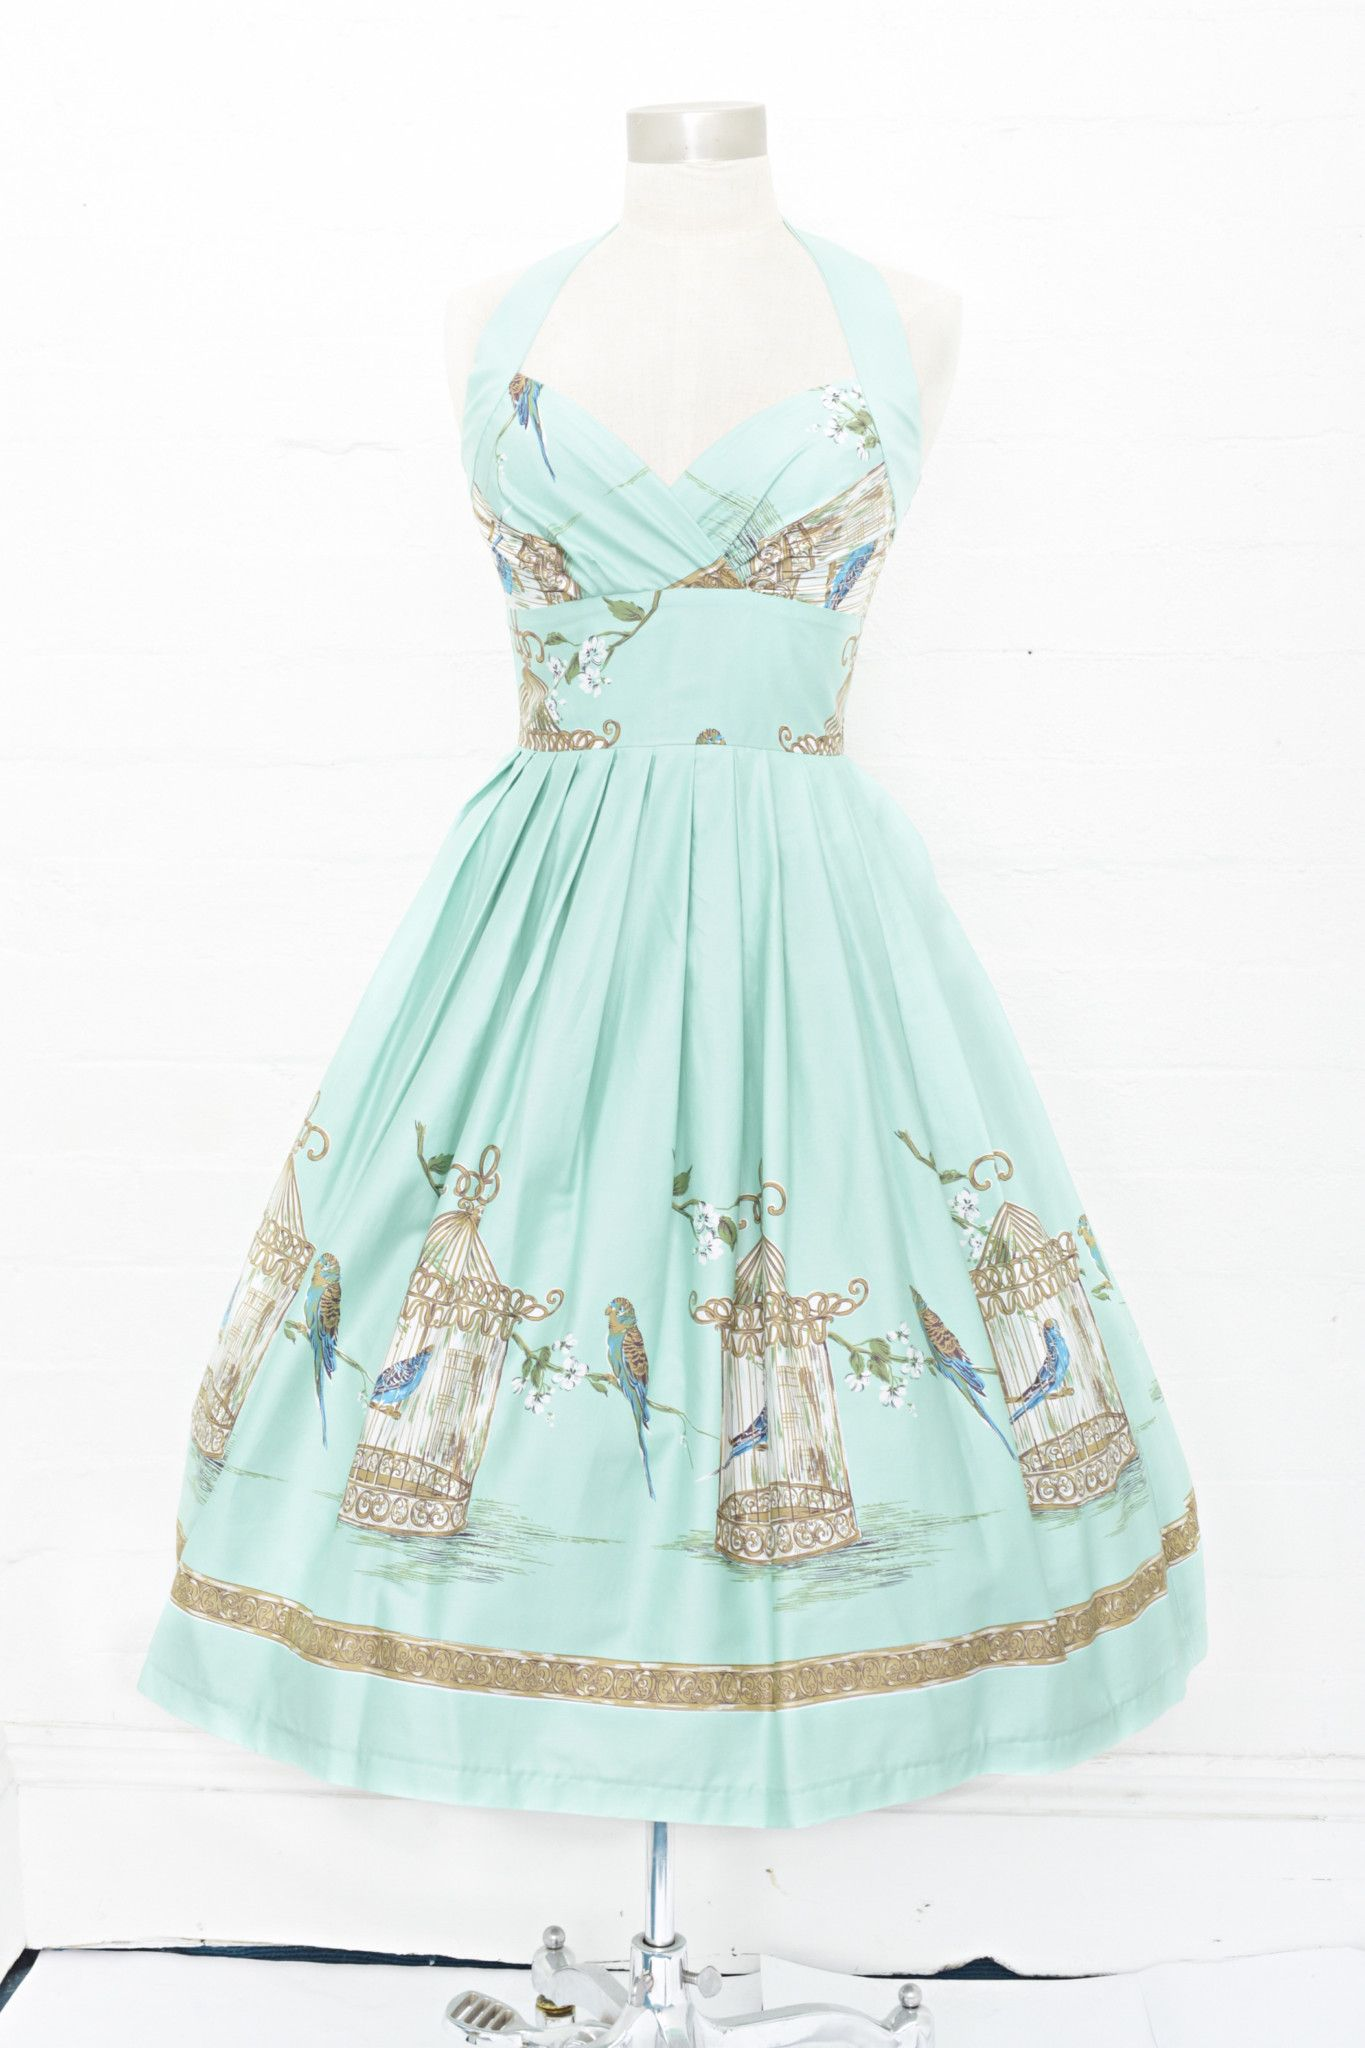 Sophia Budgie is a vintage inspired dress and other vintage inspired ...